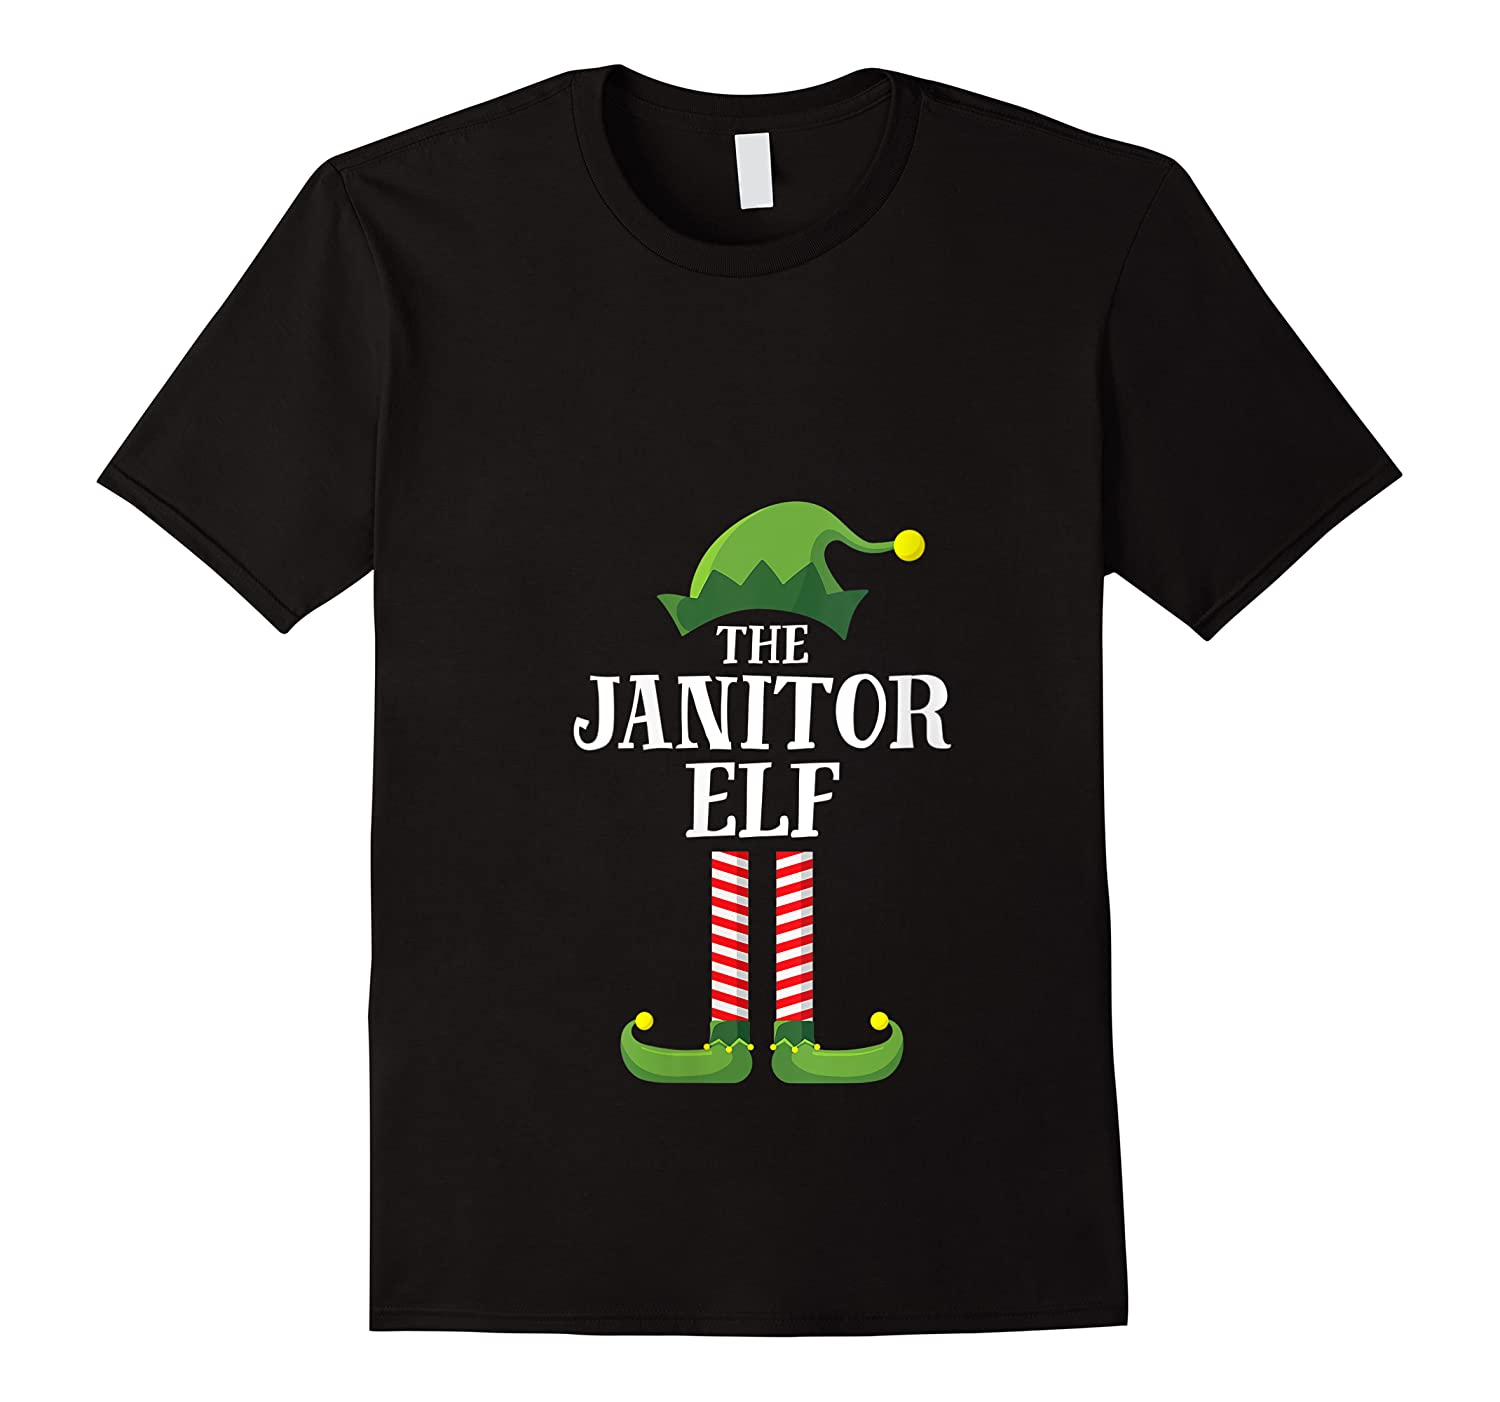 Janitor Elf Matching Family Group Christmas Party Pajama T-shirt